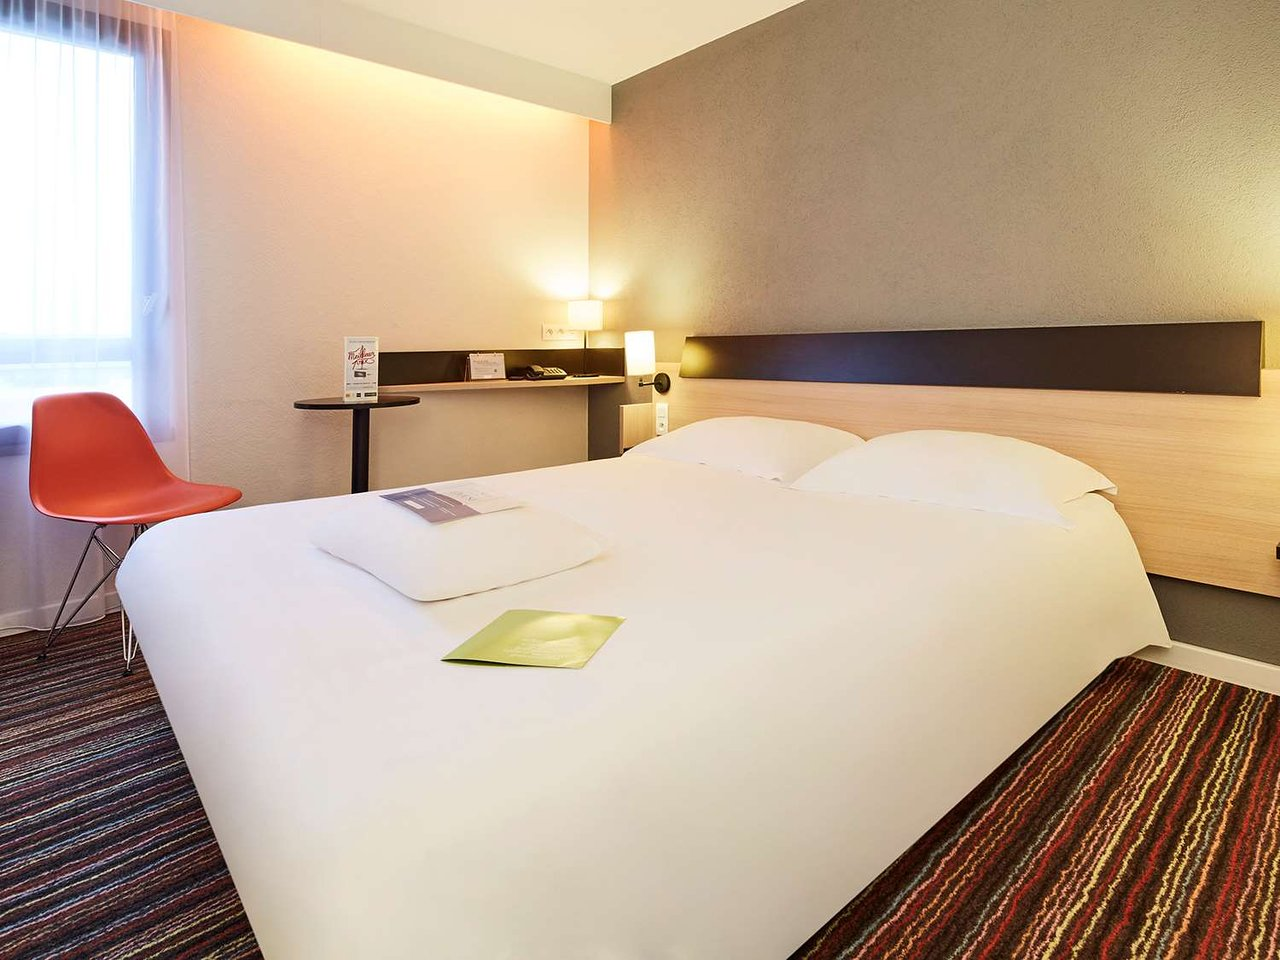 Hotel Chambray Les Tours Hotel Kyriad Tours Sud Chambray Les Tours Ab 53 81